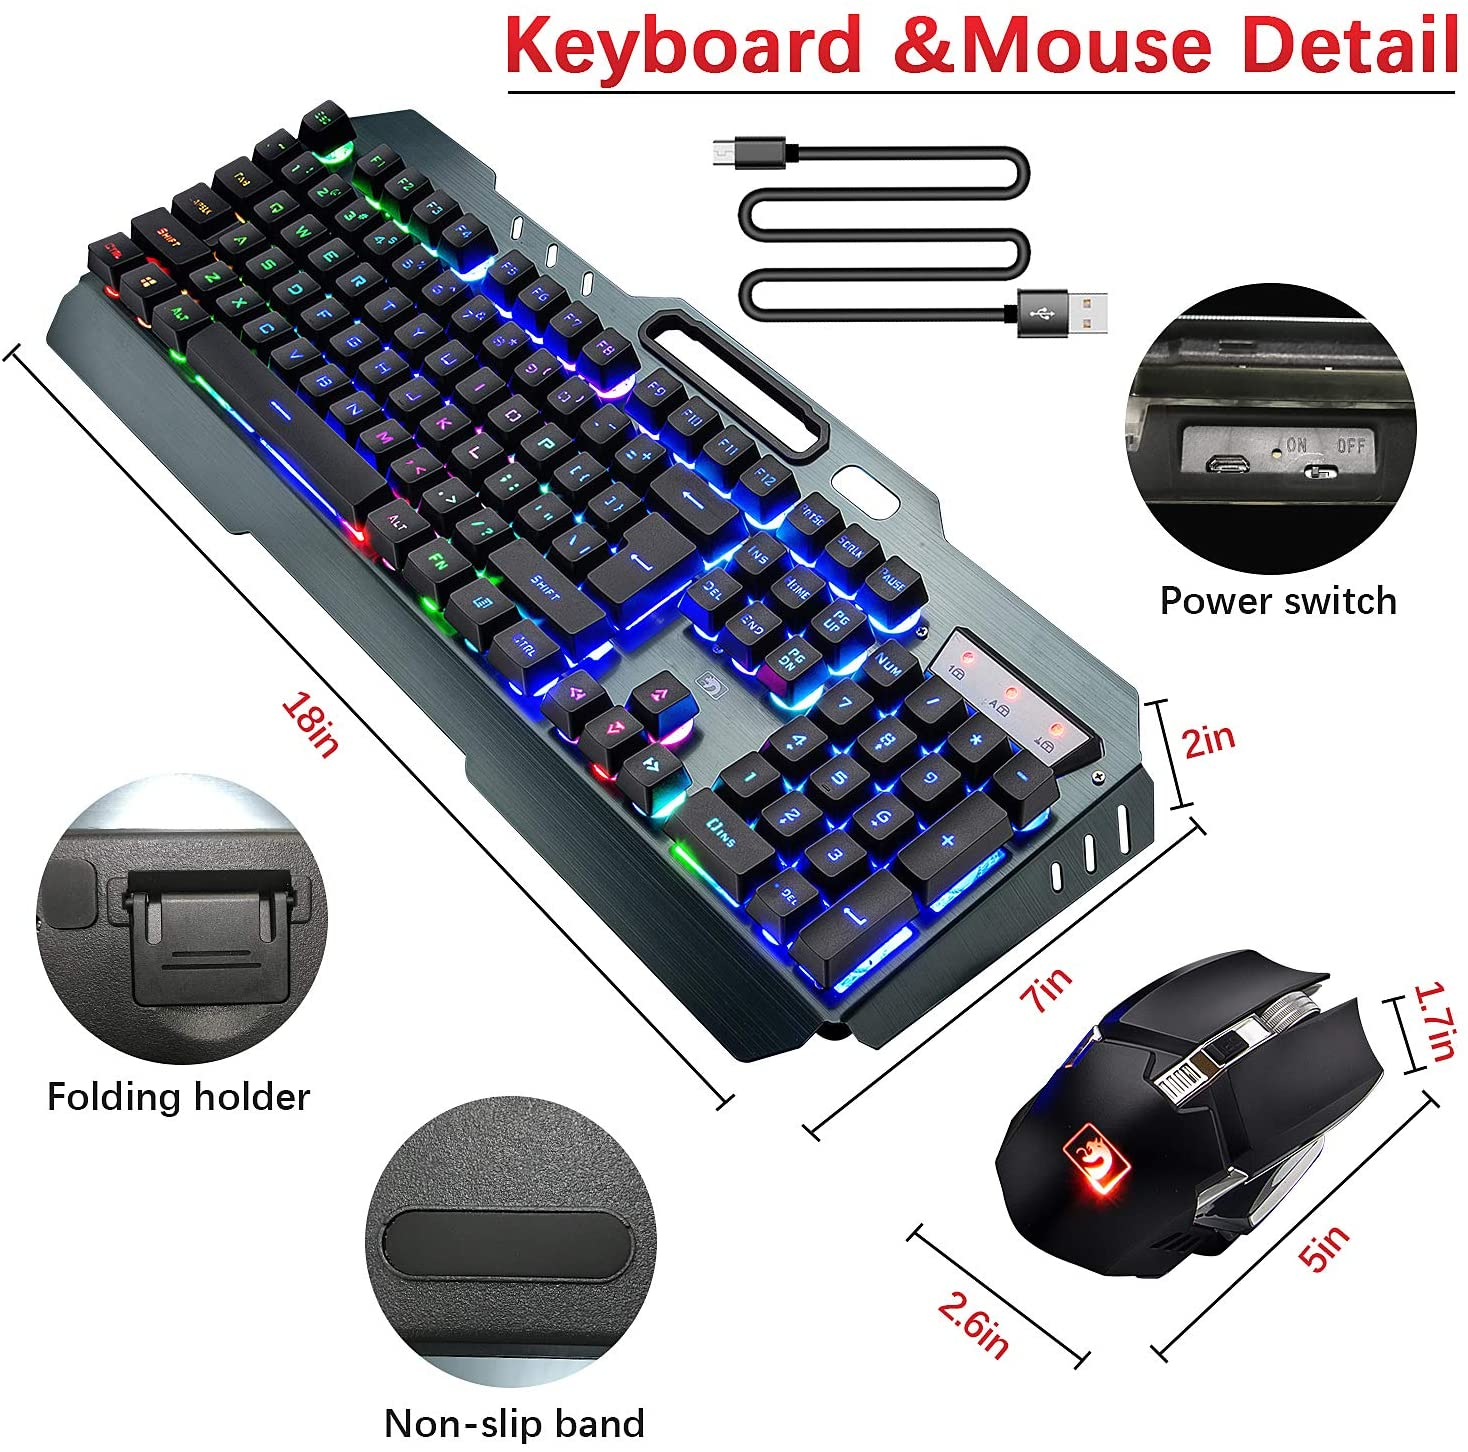 Wireless Gaming Keyboard and Mouse Combo,3 in 1 Rainbow LED Rechargeable Keyboard Mouse with 3800mAh Battery Metal Panel,10 Colors RGB Gaming Mouse Pad (32.5x12x0.15 inch),7 Colors Mute Gaming Mouse